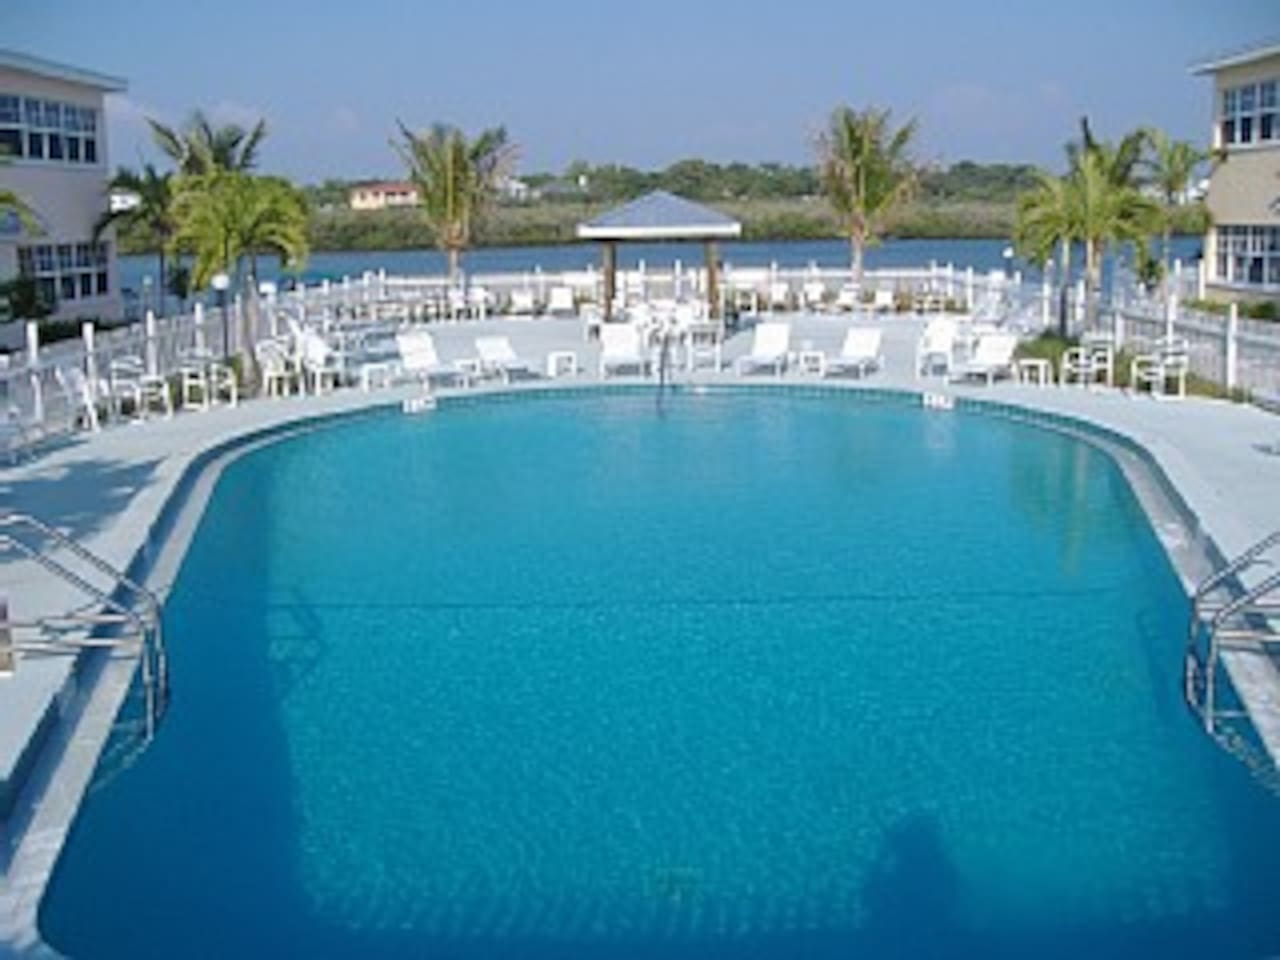 Largest pool in Indian Shores is just steps away